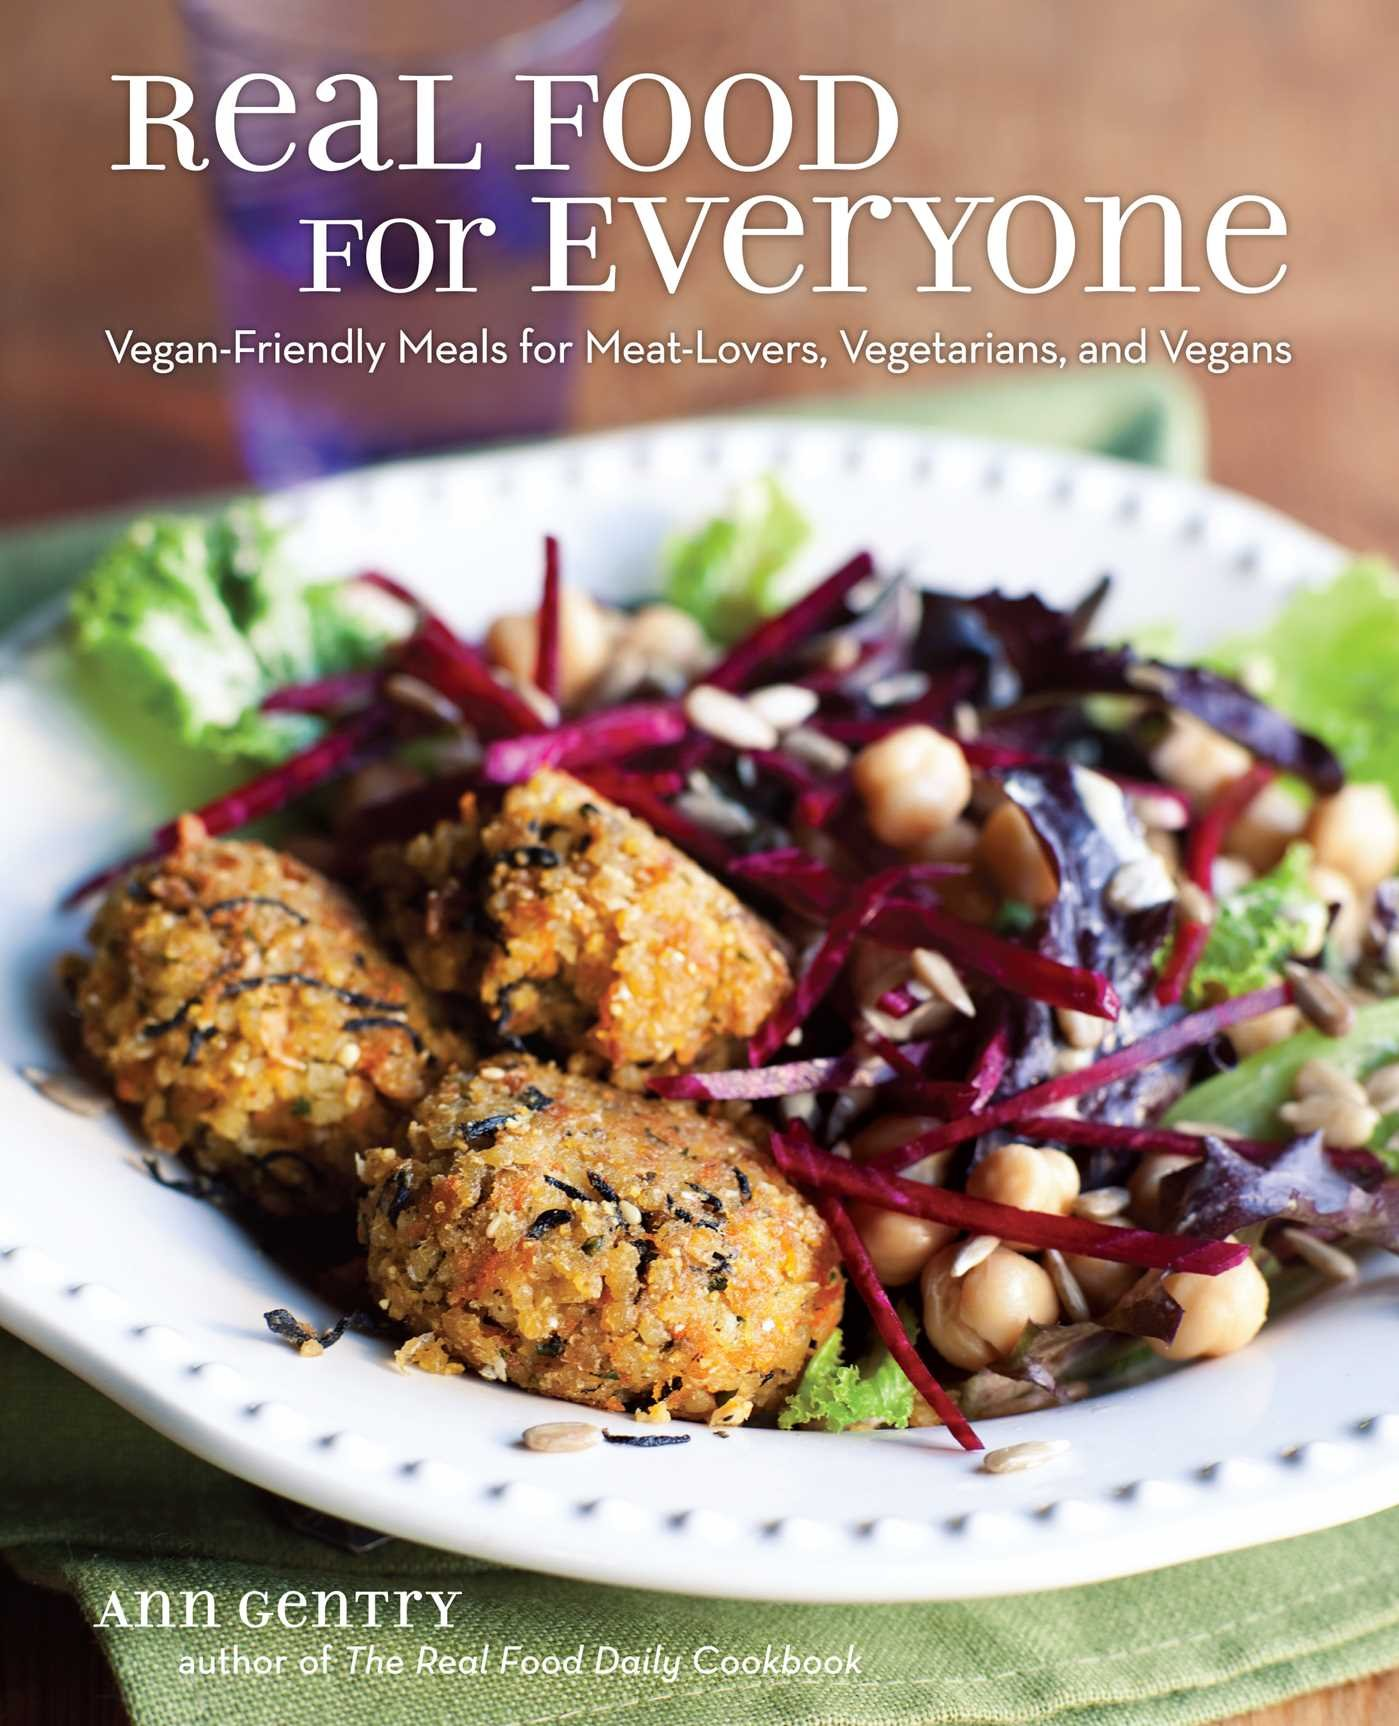 Real food for everyone vegan friendly meals for meat lovers real food for everyone vegan friendly meals for meat lovers vegetarians and vegans ann gentry 0050837343436 amazon books forumfinder Gallery